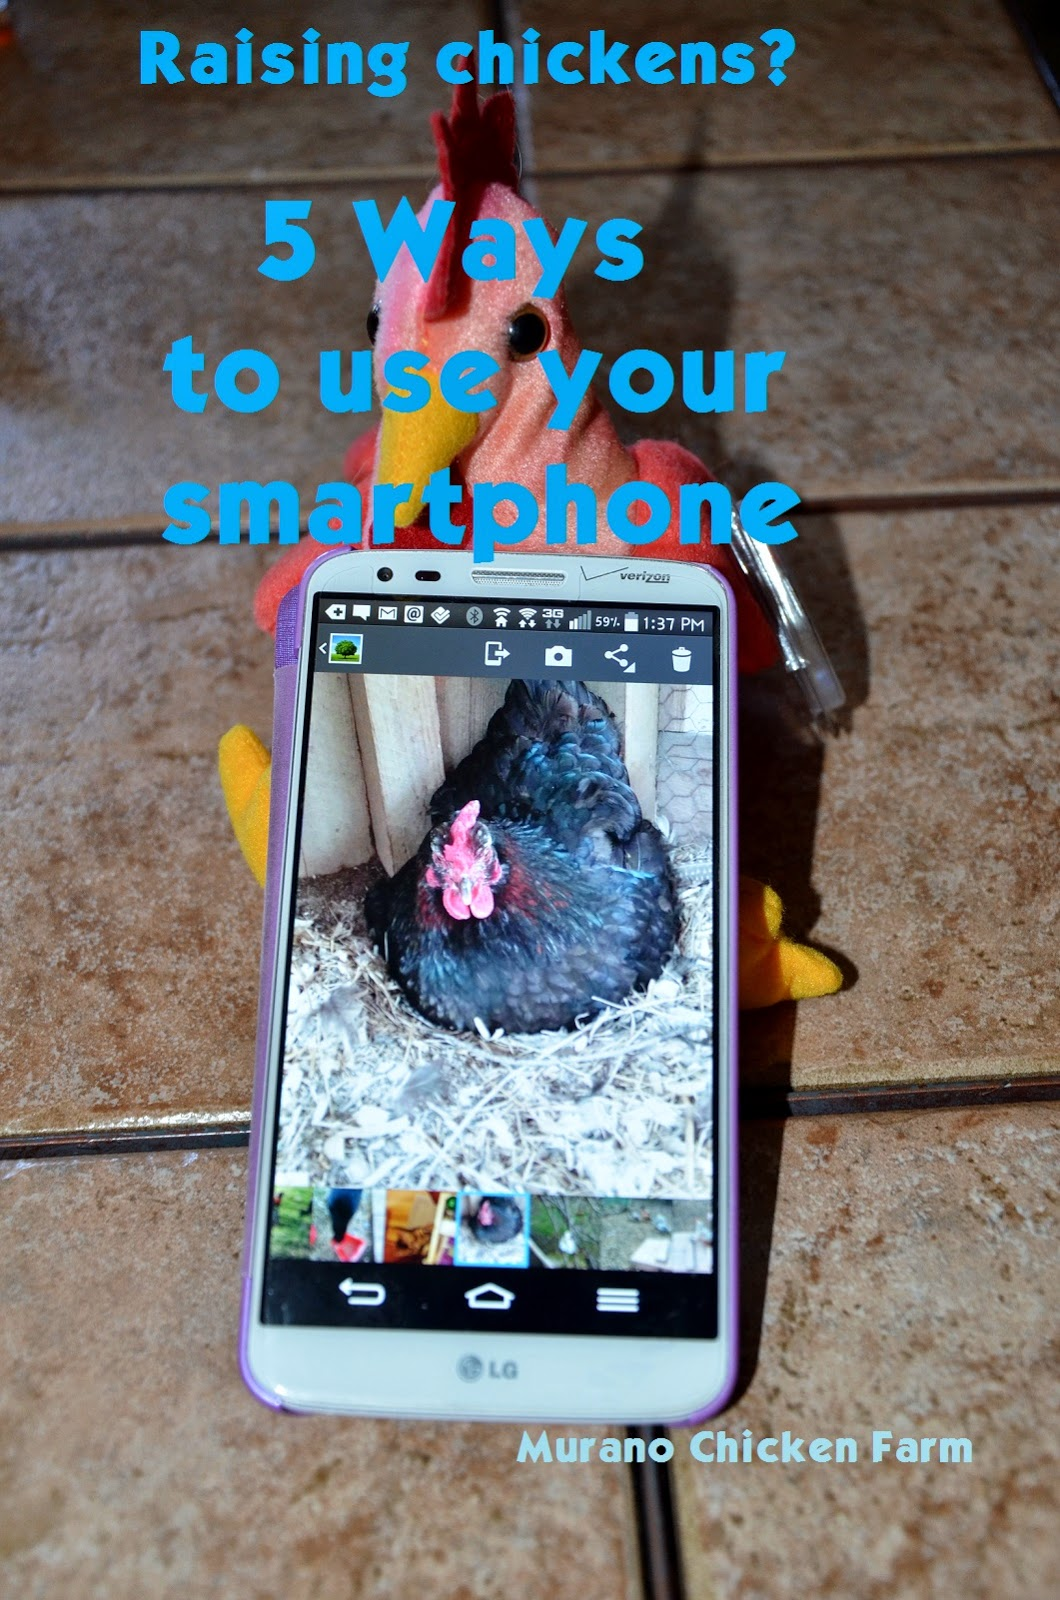 Raising poultry? 5 uses for a smartphone